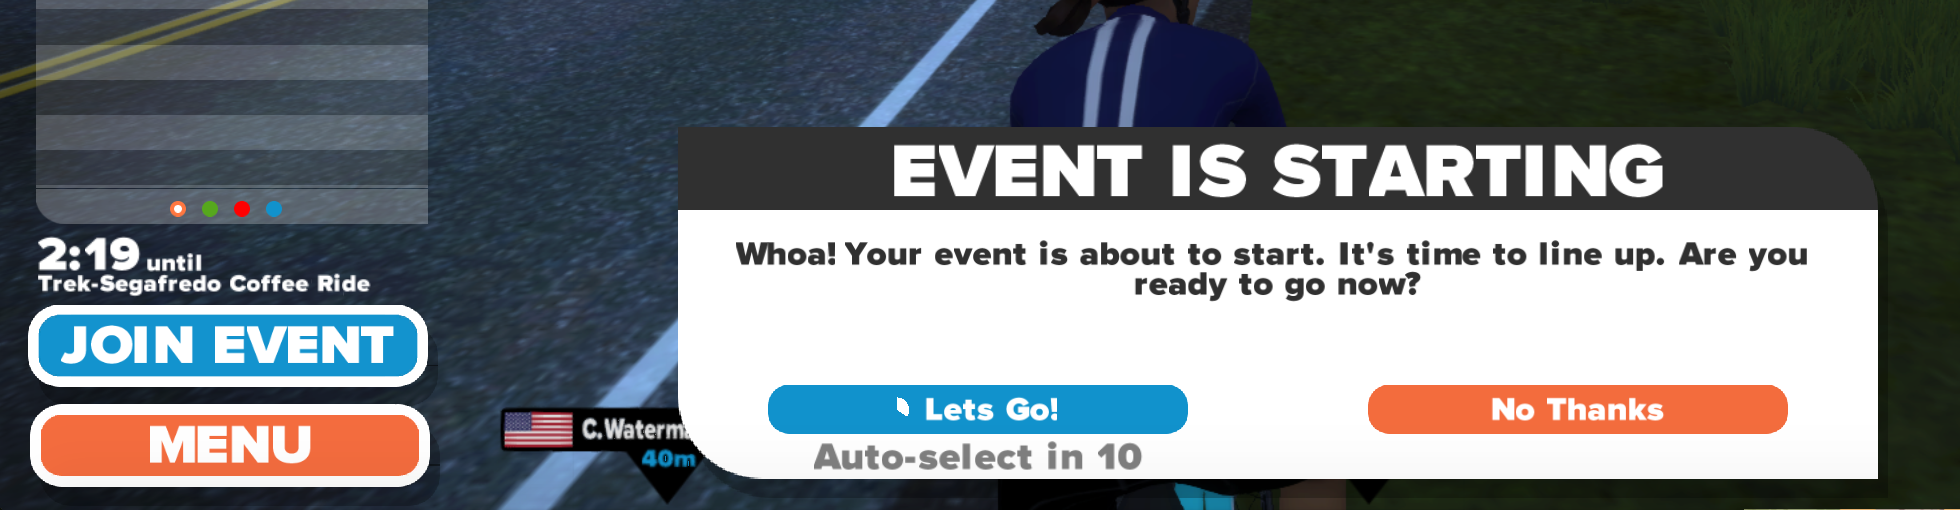 Zwift How-To: Join an Event and Read the Calendar | Zwift